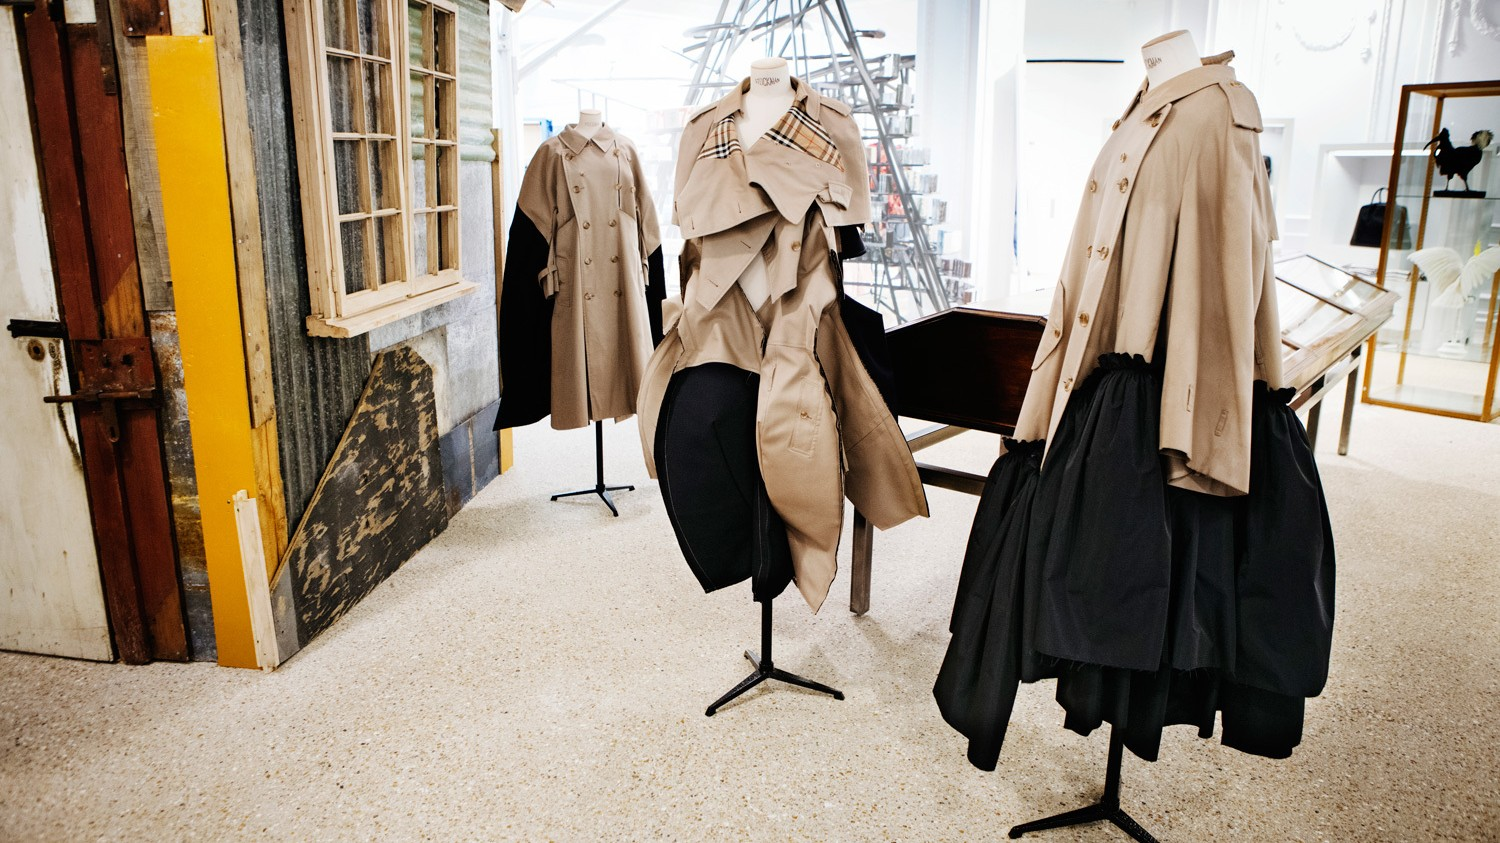 rei kawakubo has reworked the iconic burberry trench